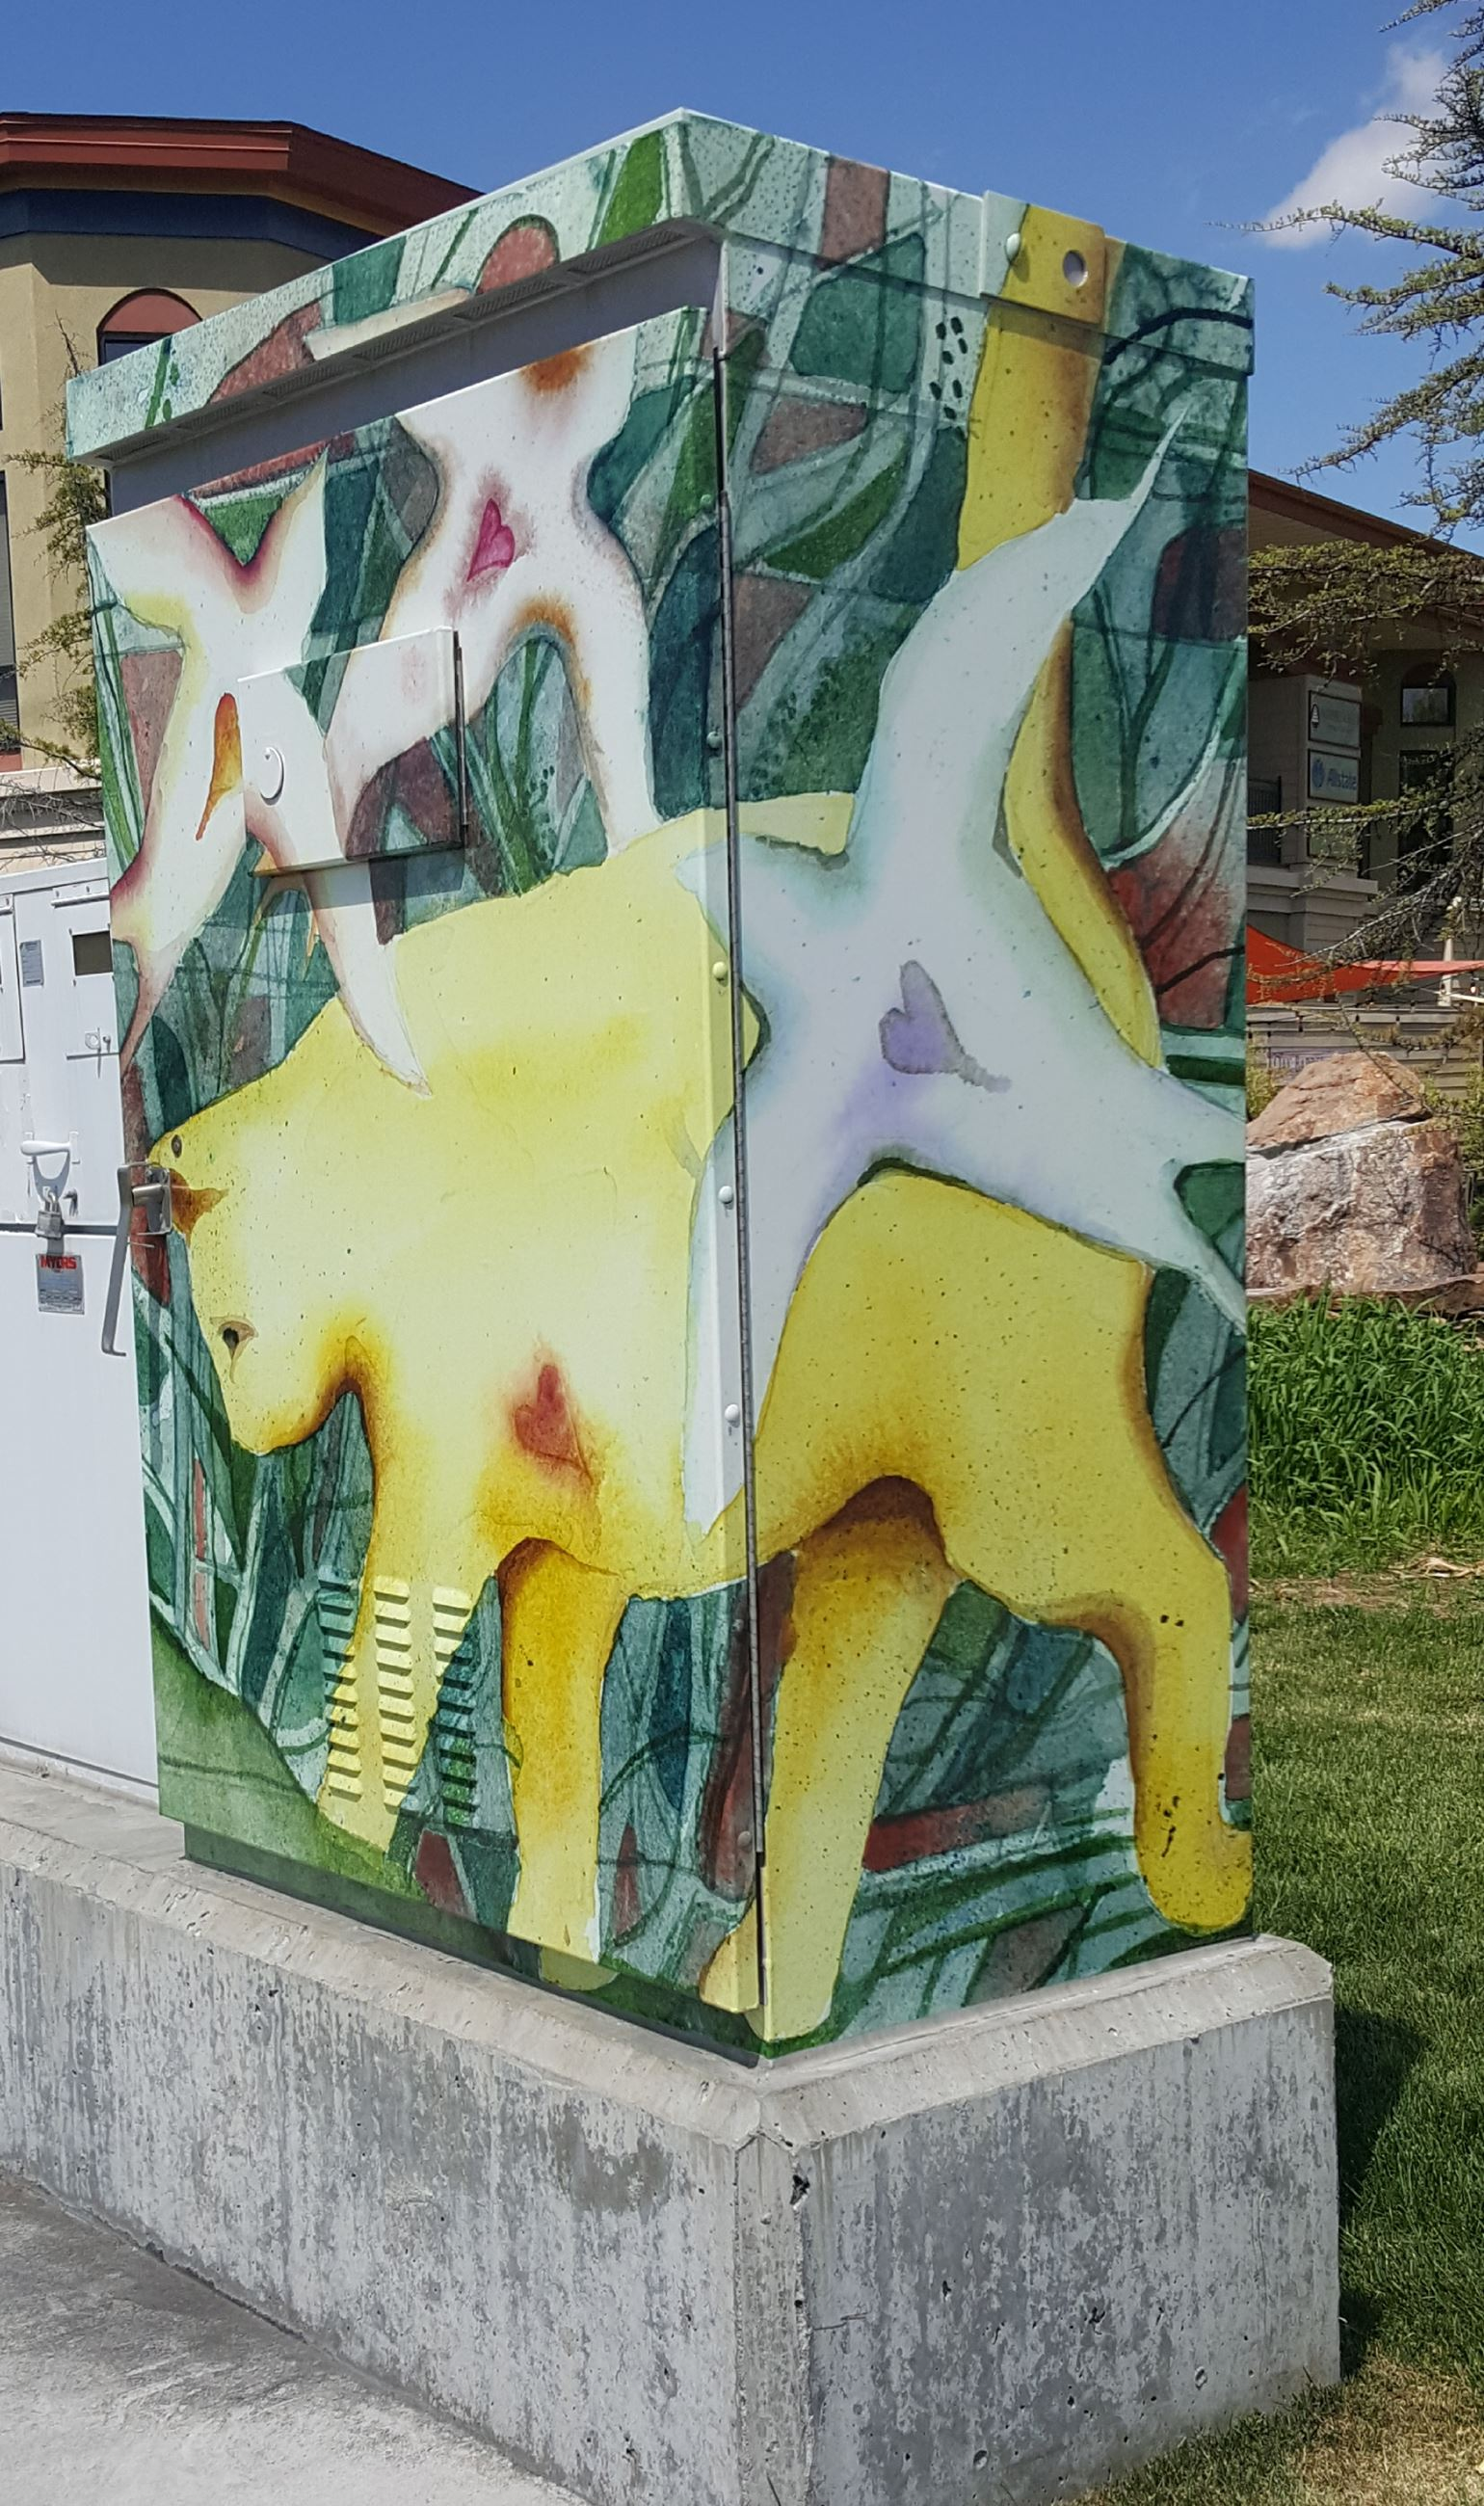 Electrical box with images of a yellow cat and white birds on a green background.